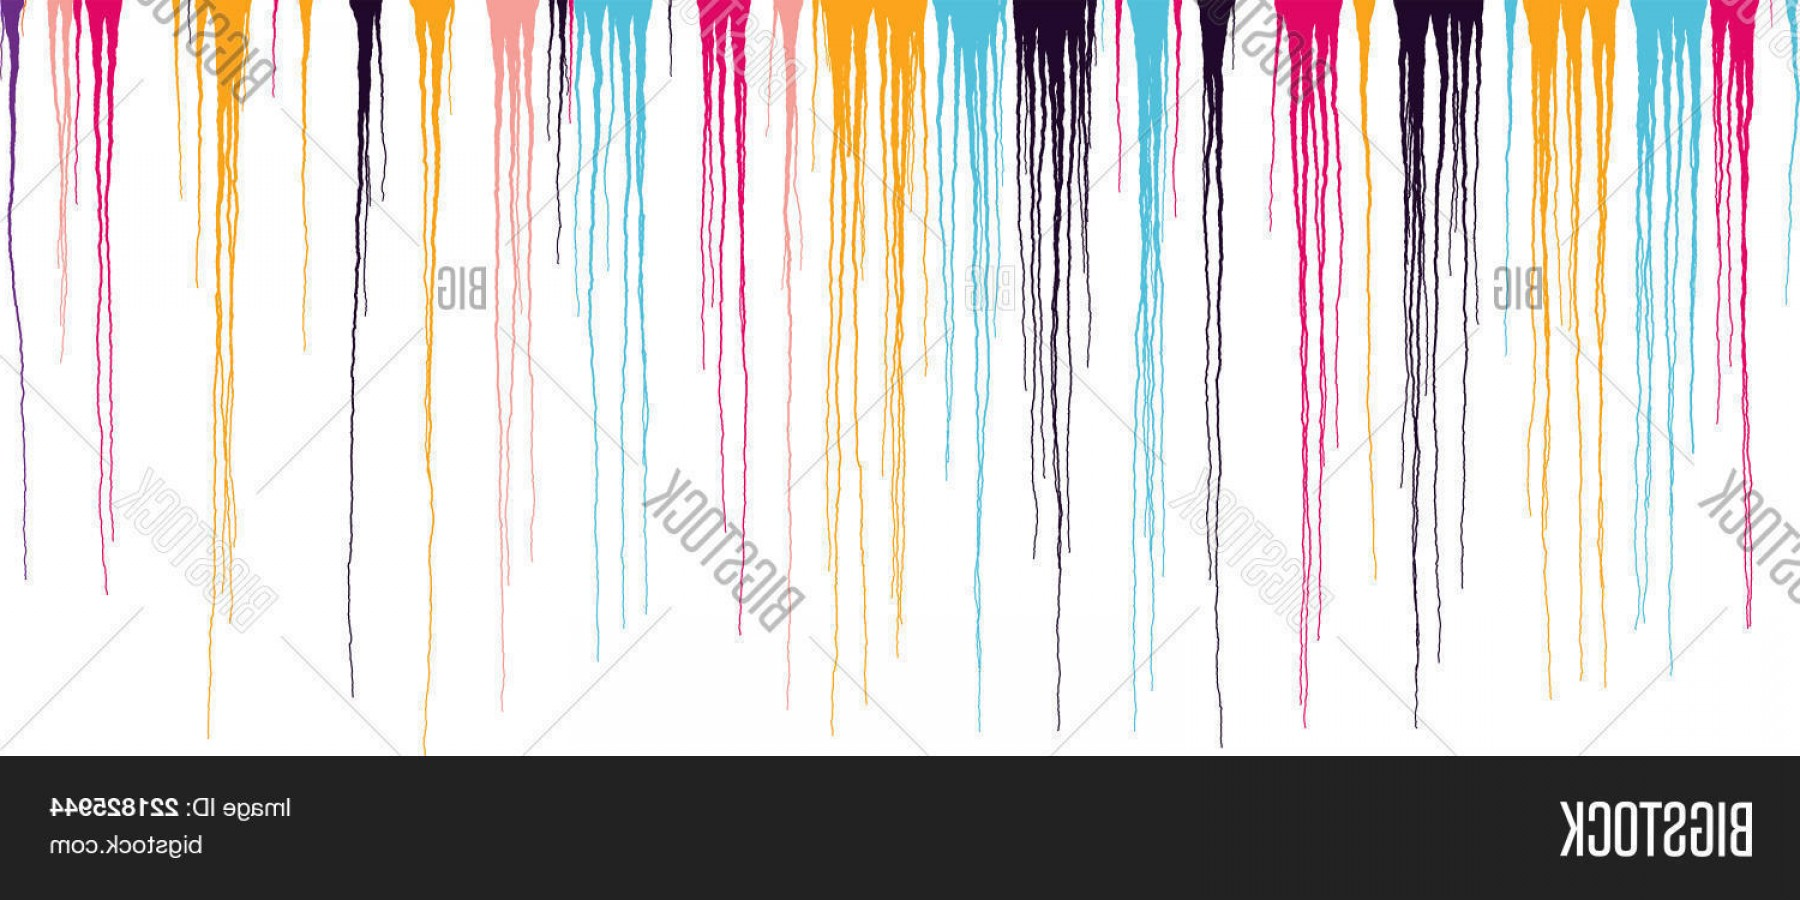 Dripping Paint Vector Illustration: Stock Vector Colorful Dripping Paint Vector Grunge Illustration